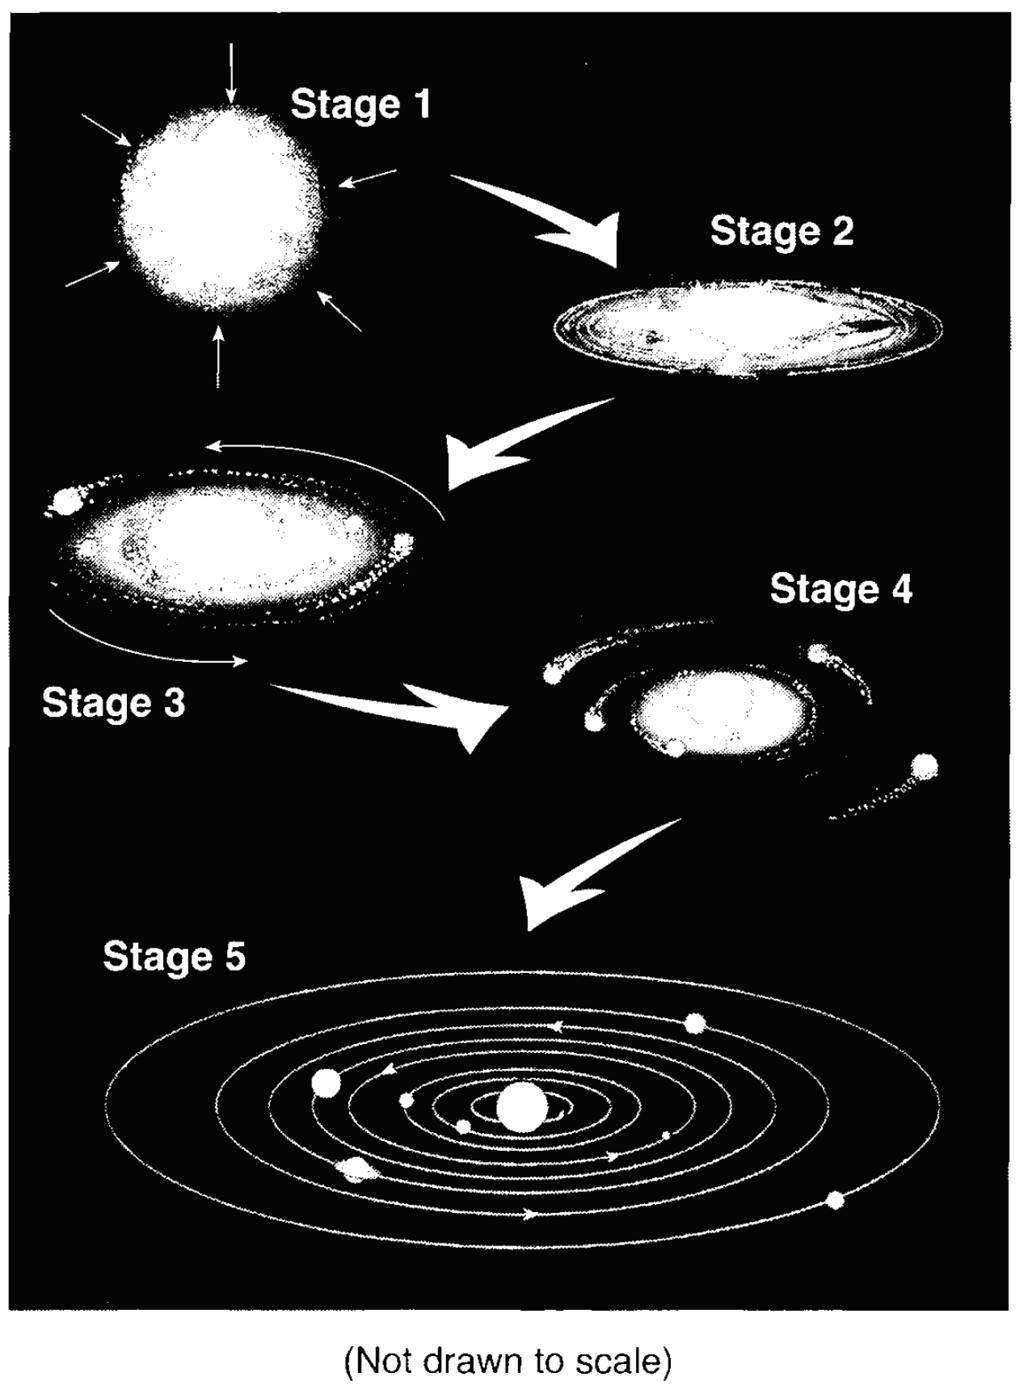 Base your answers to questions 60 through 62 on the diagram below. The diagram represents the inferred stages in the formation of our solar system. Stage 1 shows a contracting gas cloud.